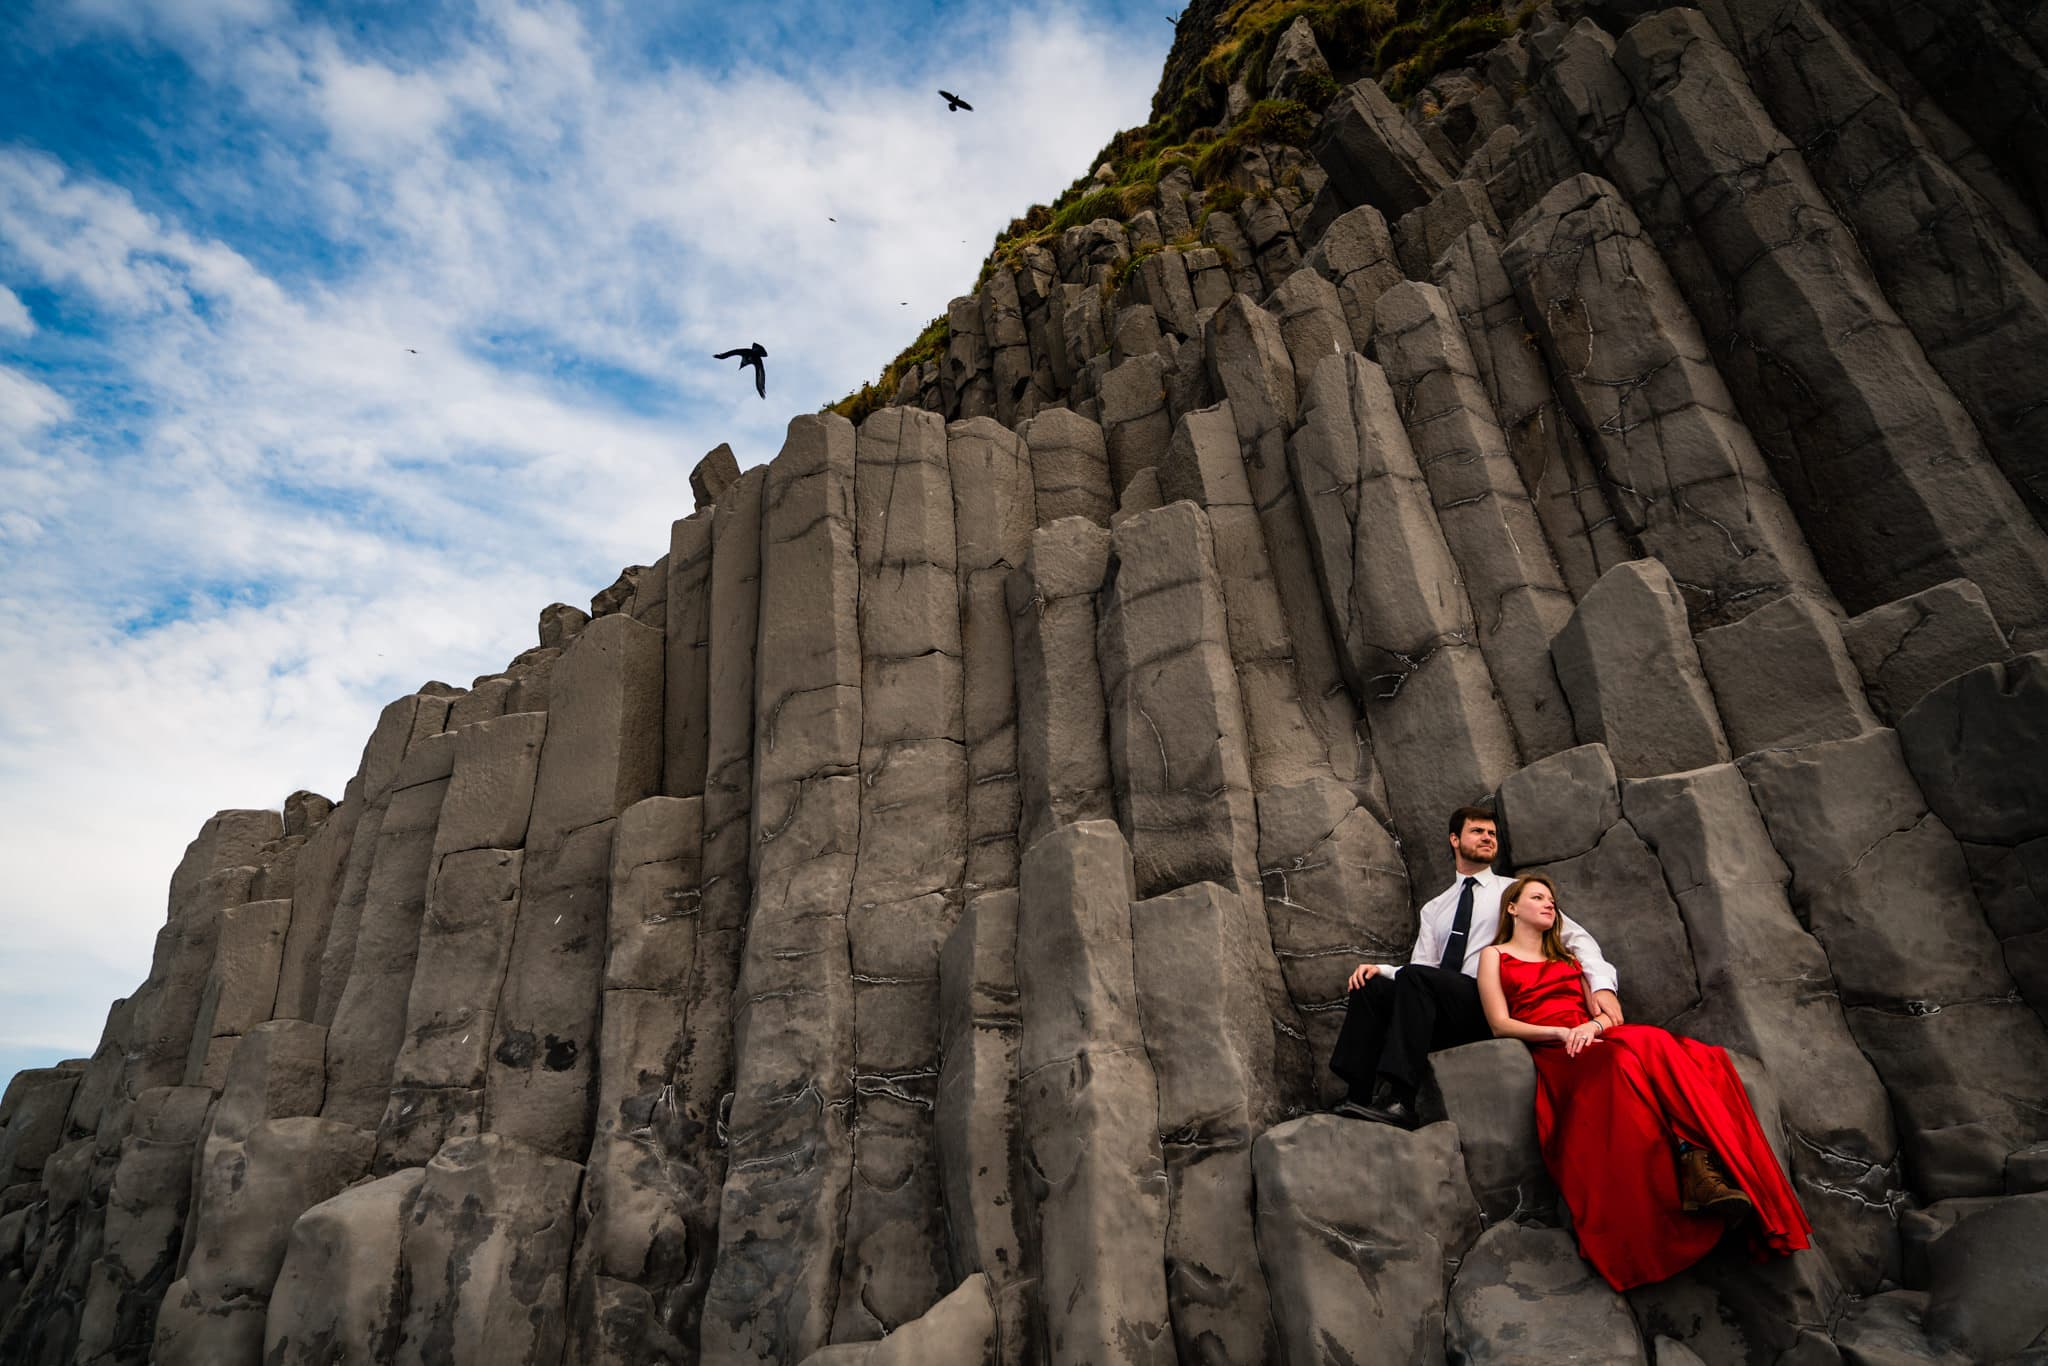 Studio 22 Photography - Iceland Engagement Photos